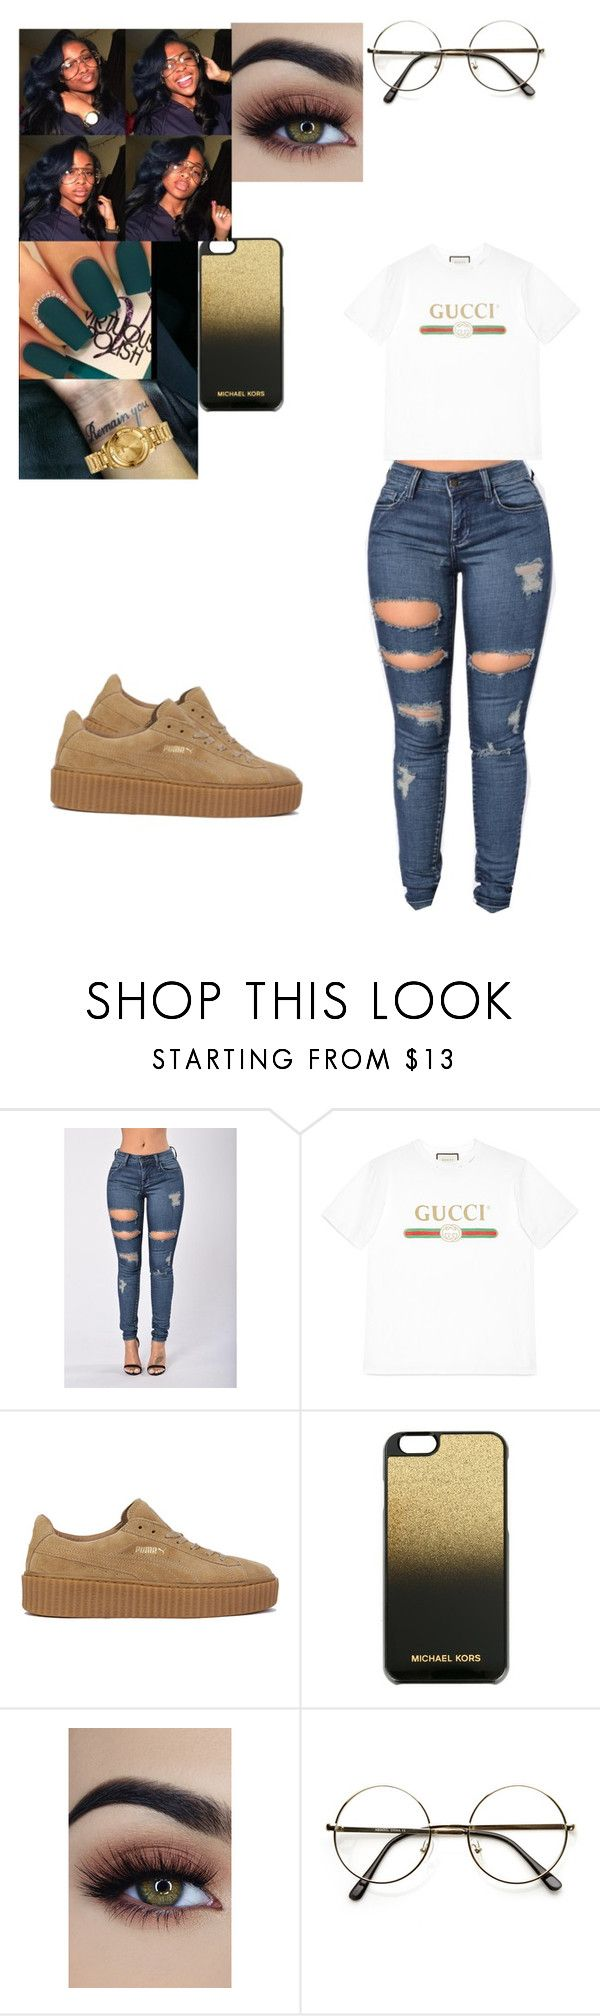 """Untitled #101"" by mcoats67 ❤ liked on Polyvore featuring Gucci, Puma, MICHAEL Michael Kors, OPI, ZeroUV and Versus"